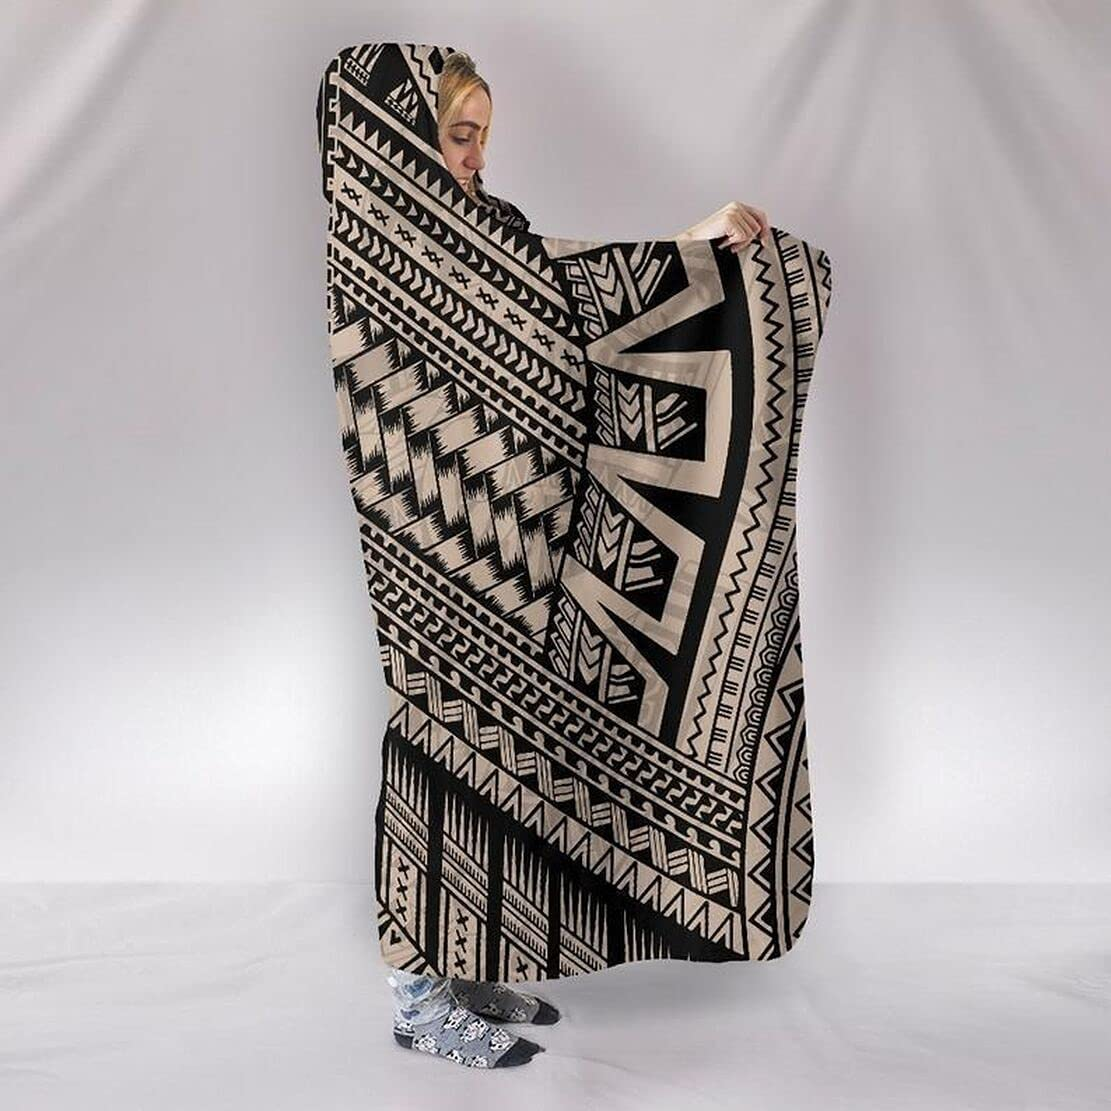 Personalized 3D Many popular brands All Over Polynesian Printed Hooded Blanket New color Th